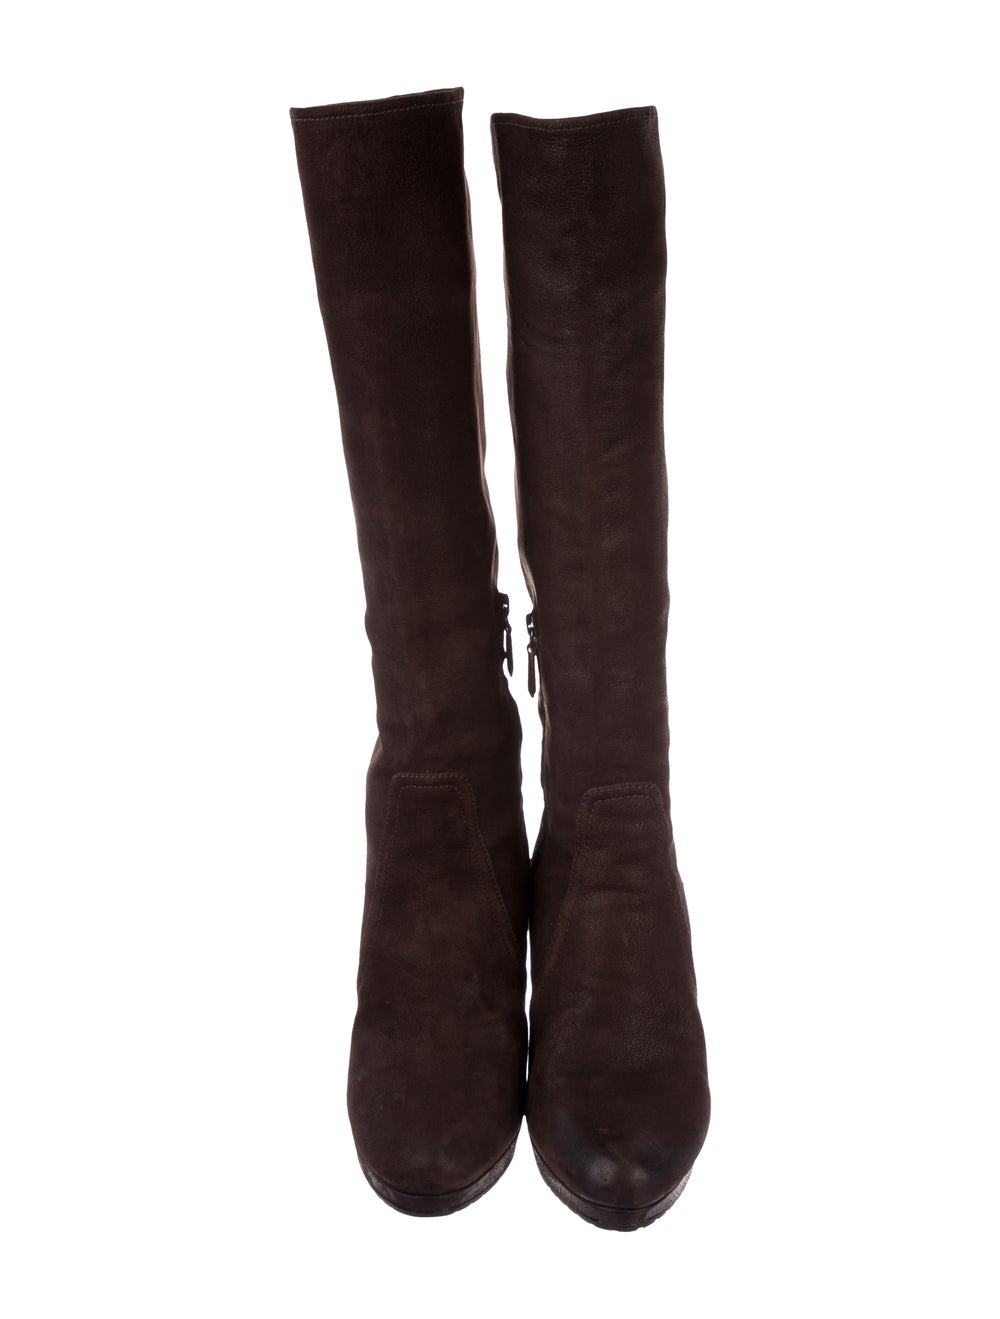 Prada Suede Knee-High Boots Brown - image 3